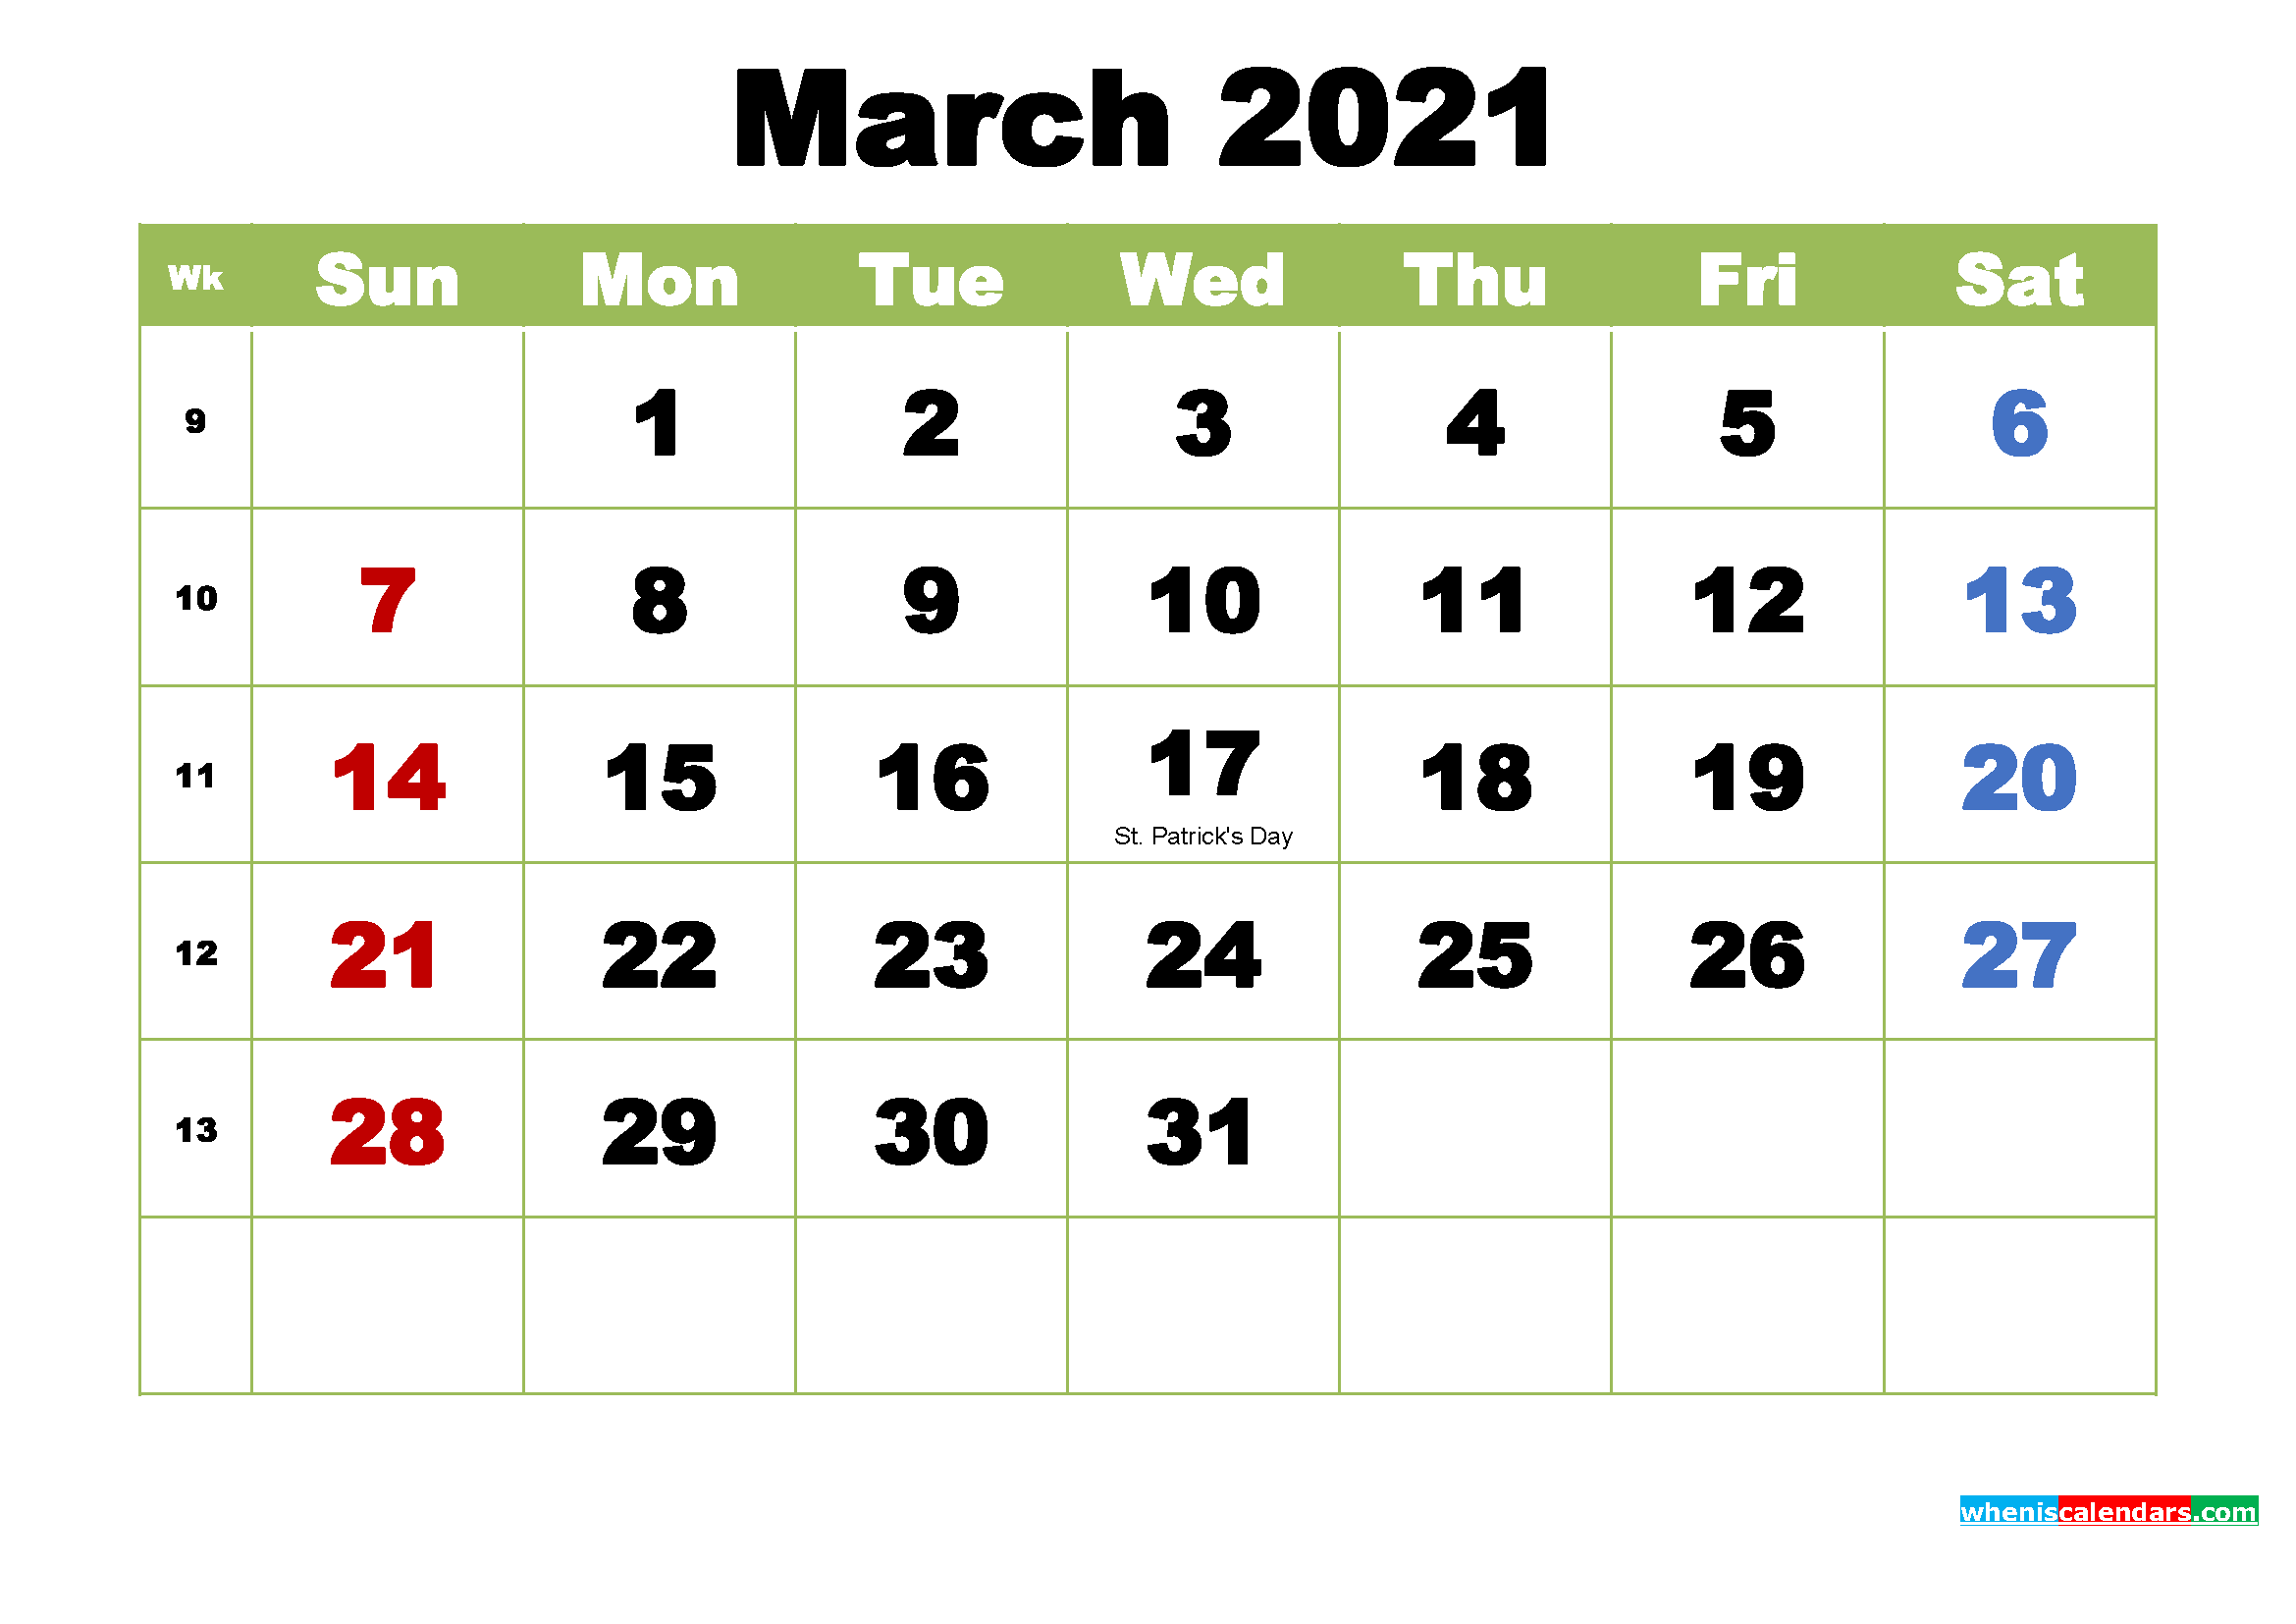 March 2021 Calendar with Holidays Wallpaper